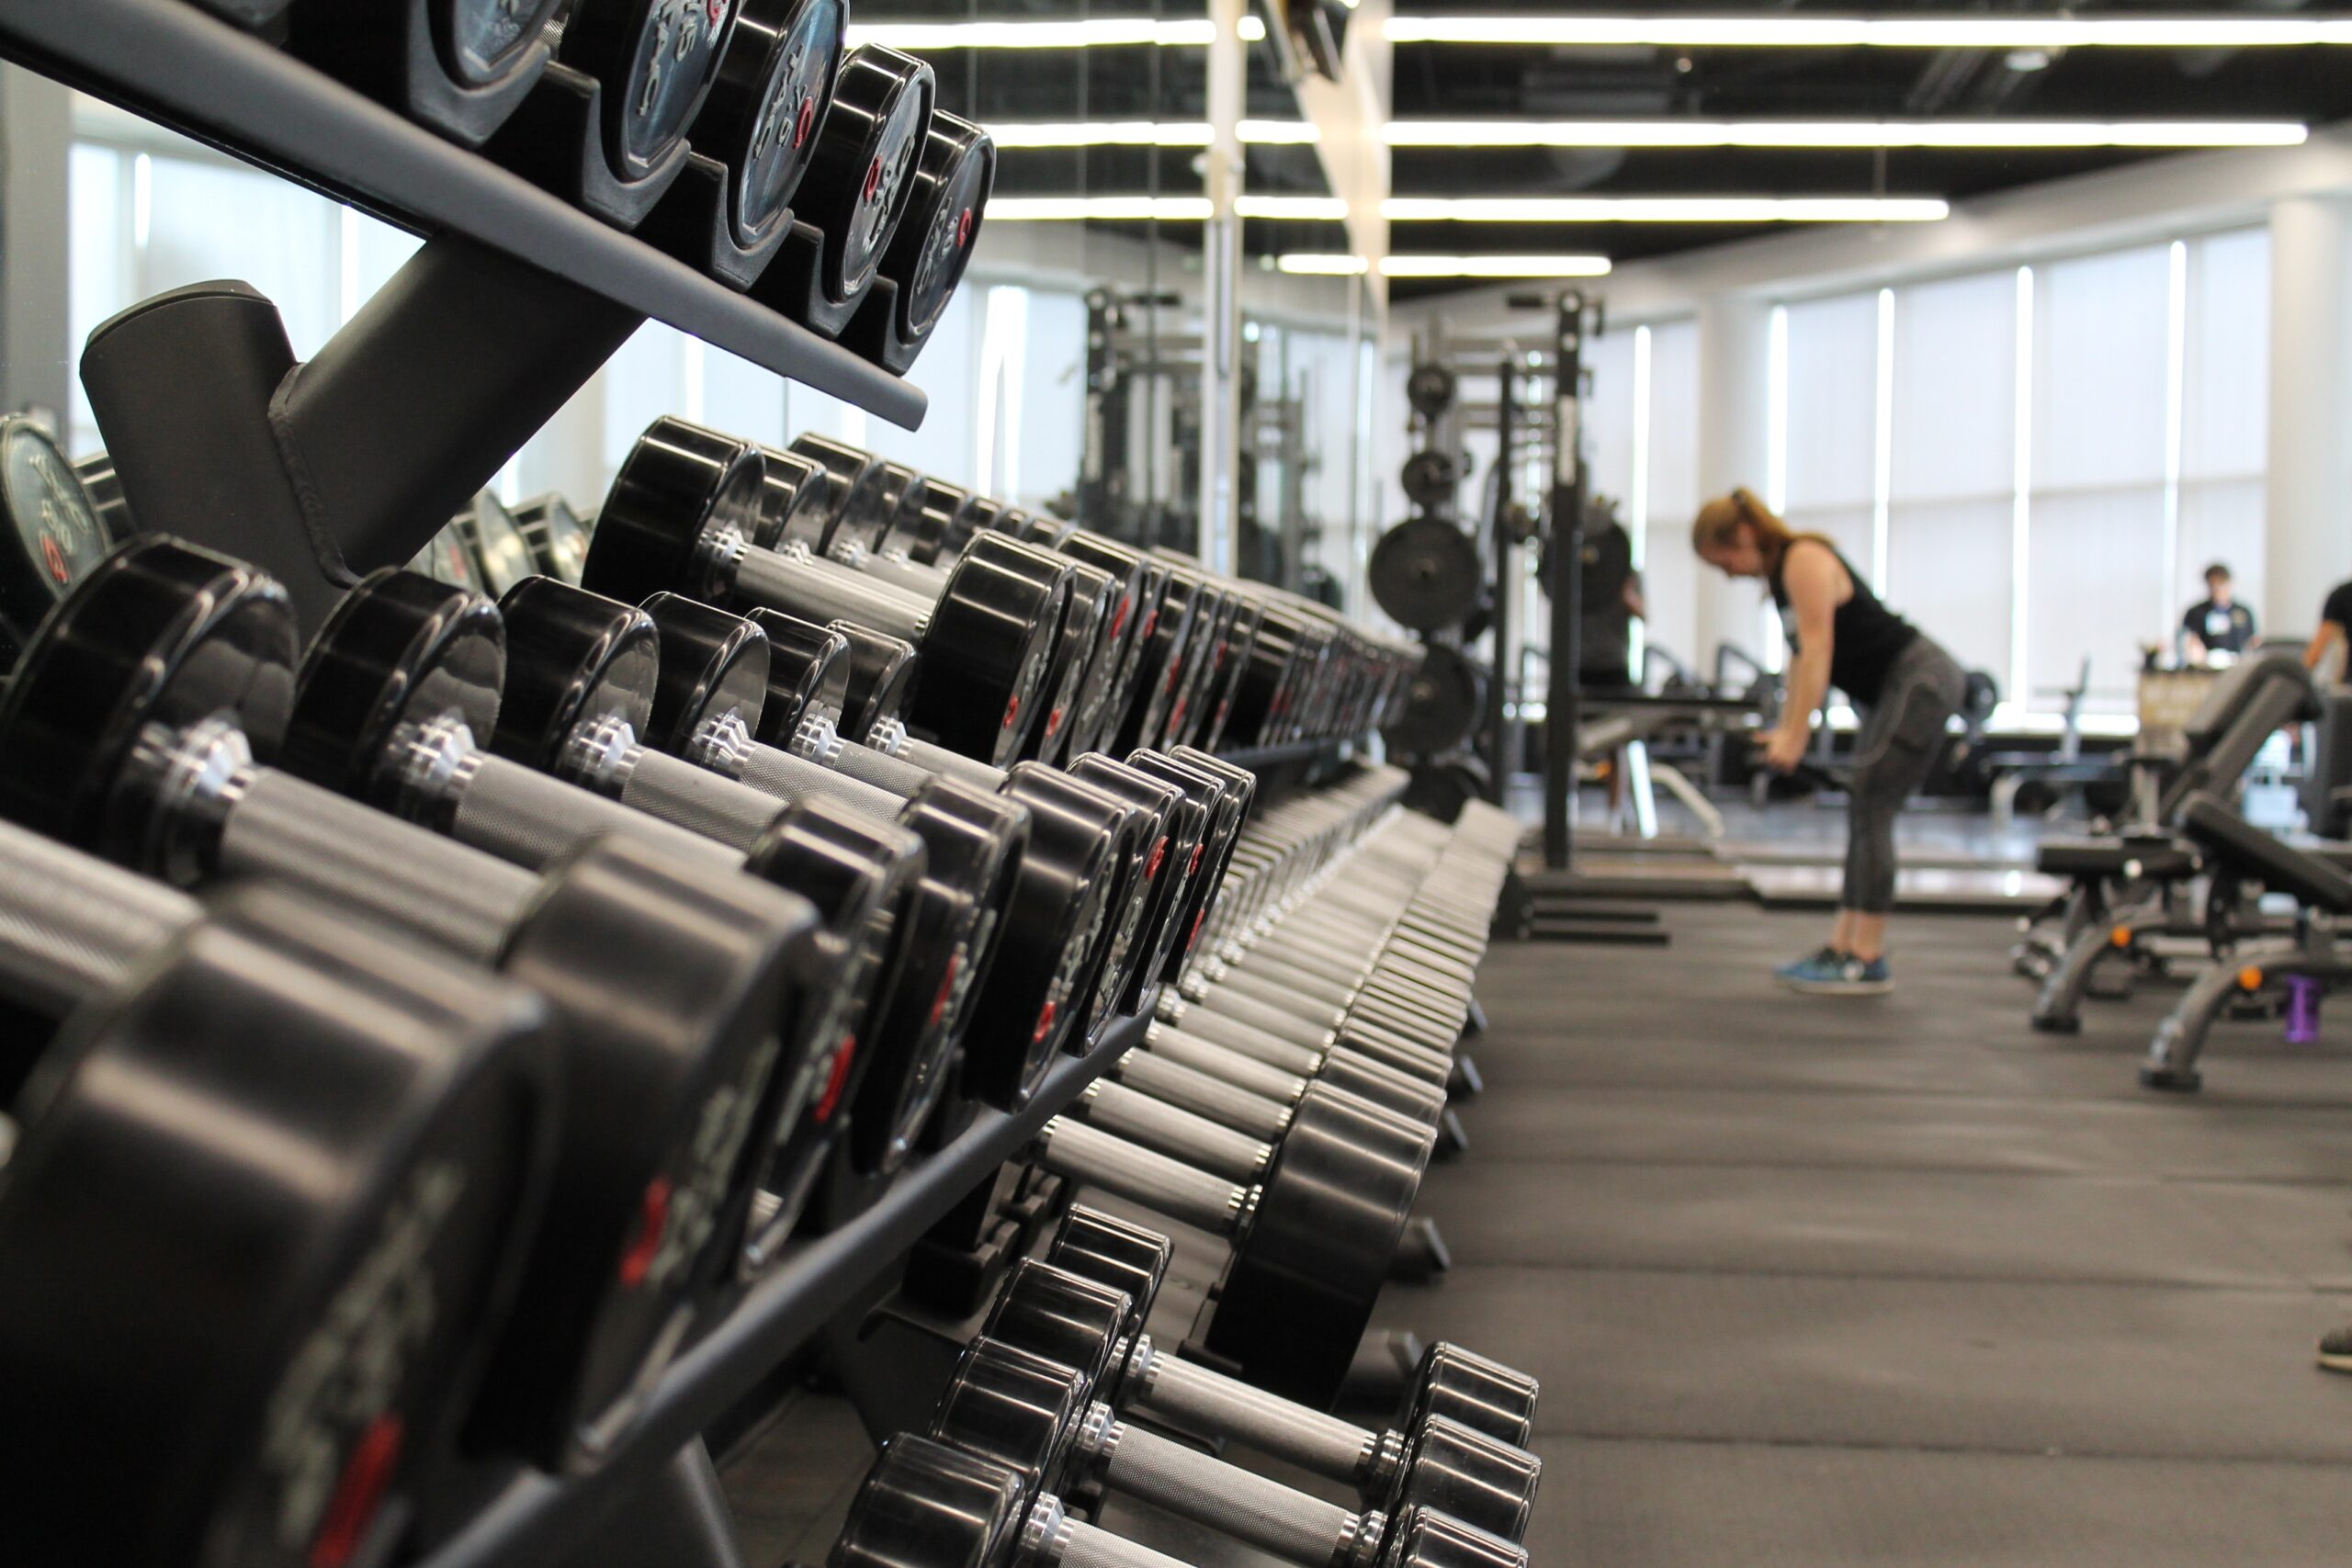 Top Tips When Returning or Starting the Gym!